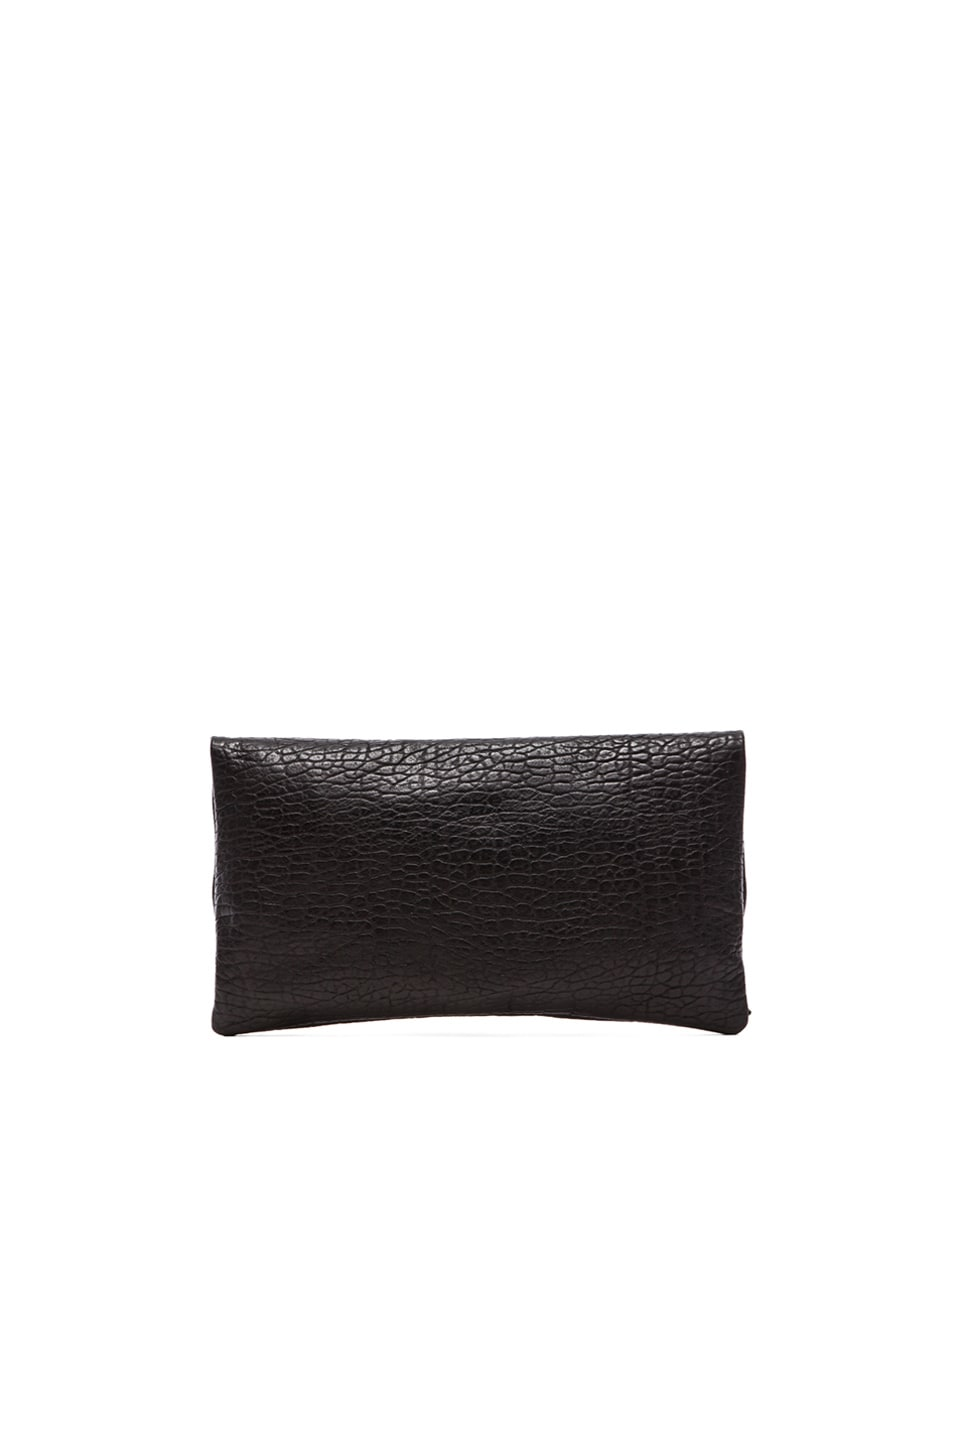 Clare V. Foldover Clutch in Pebbled Black